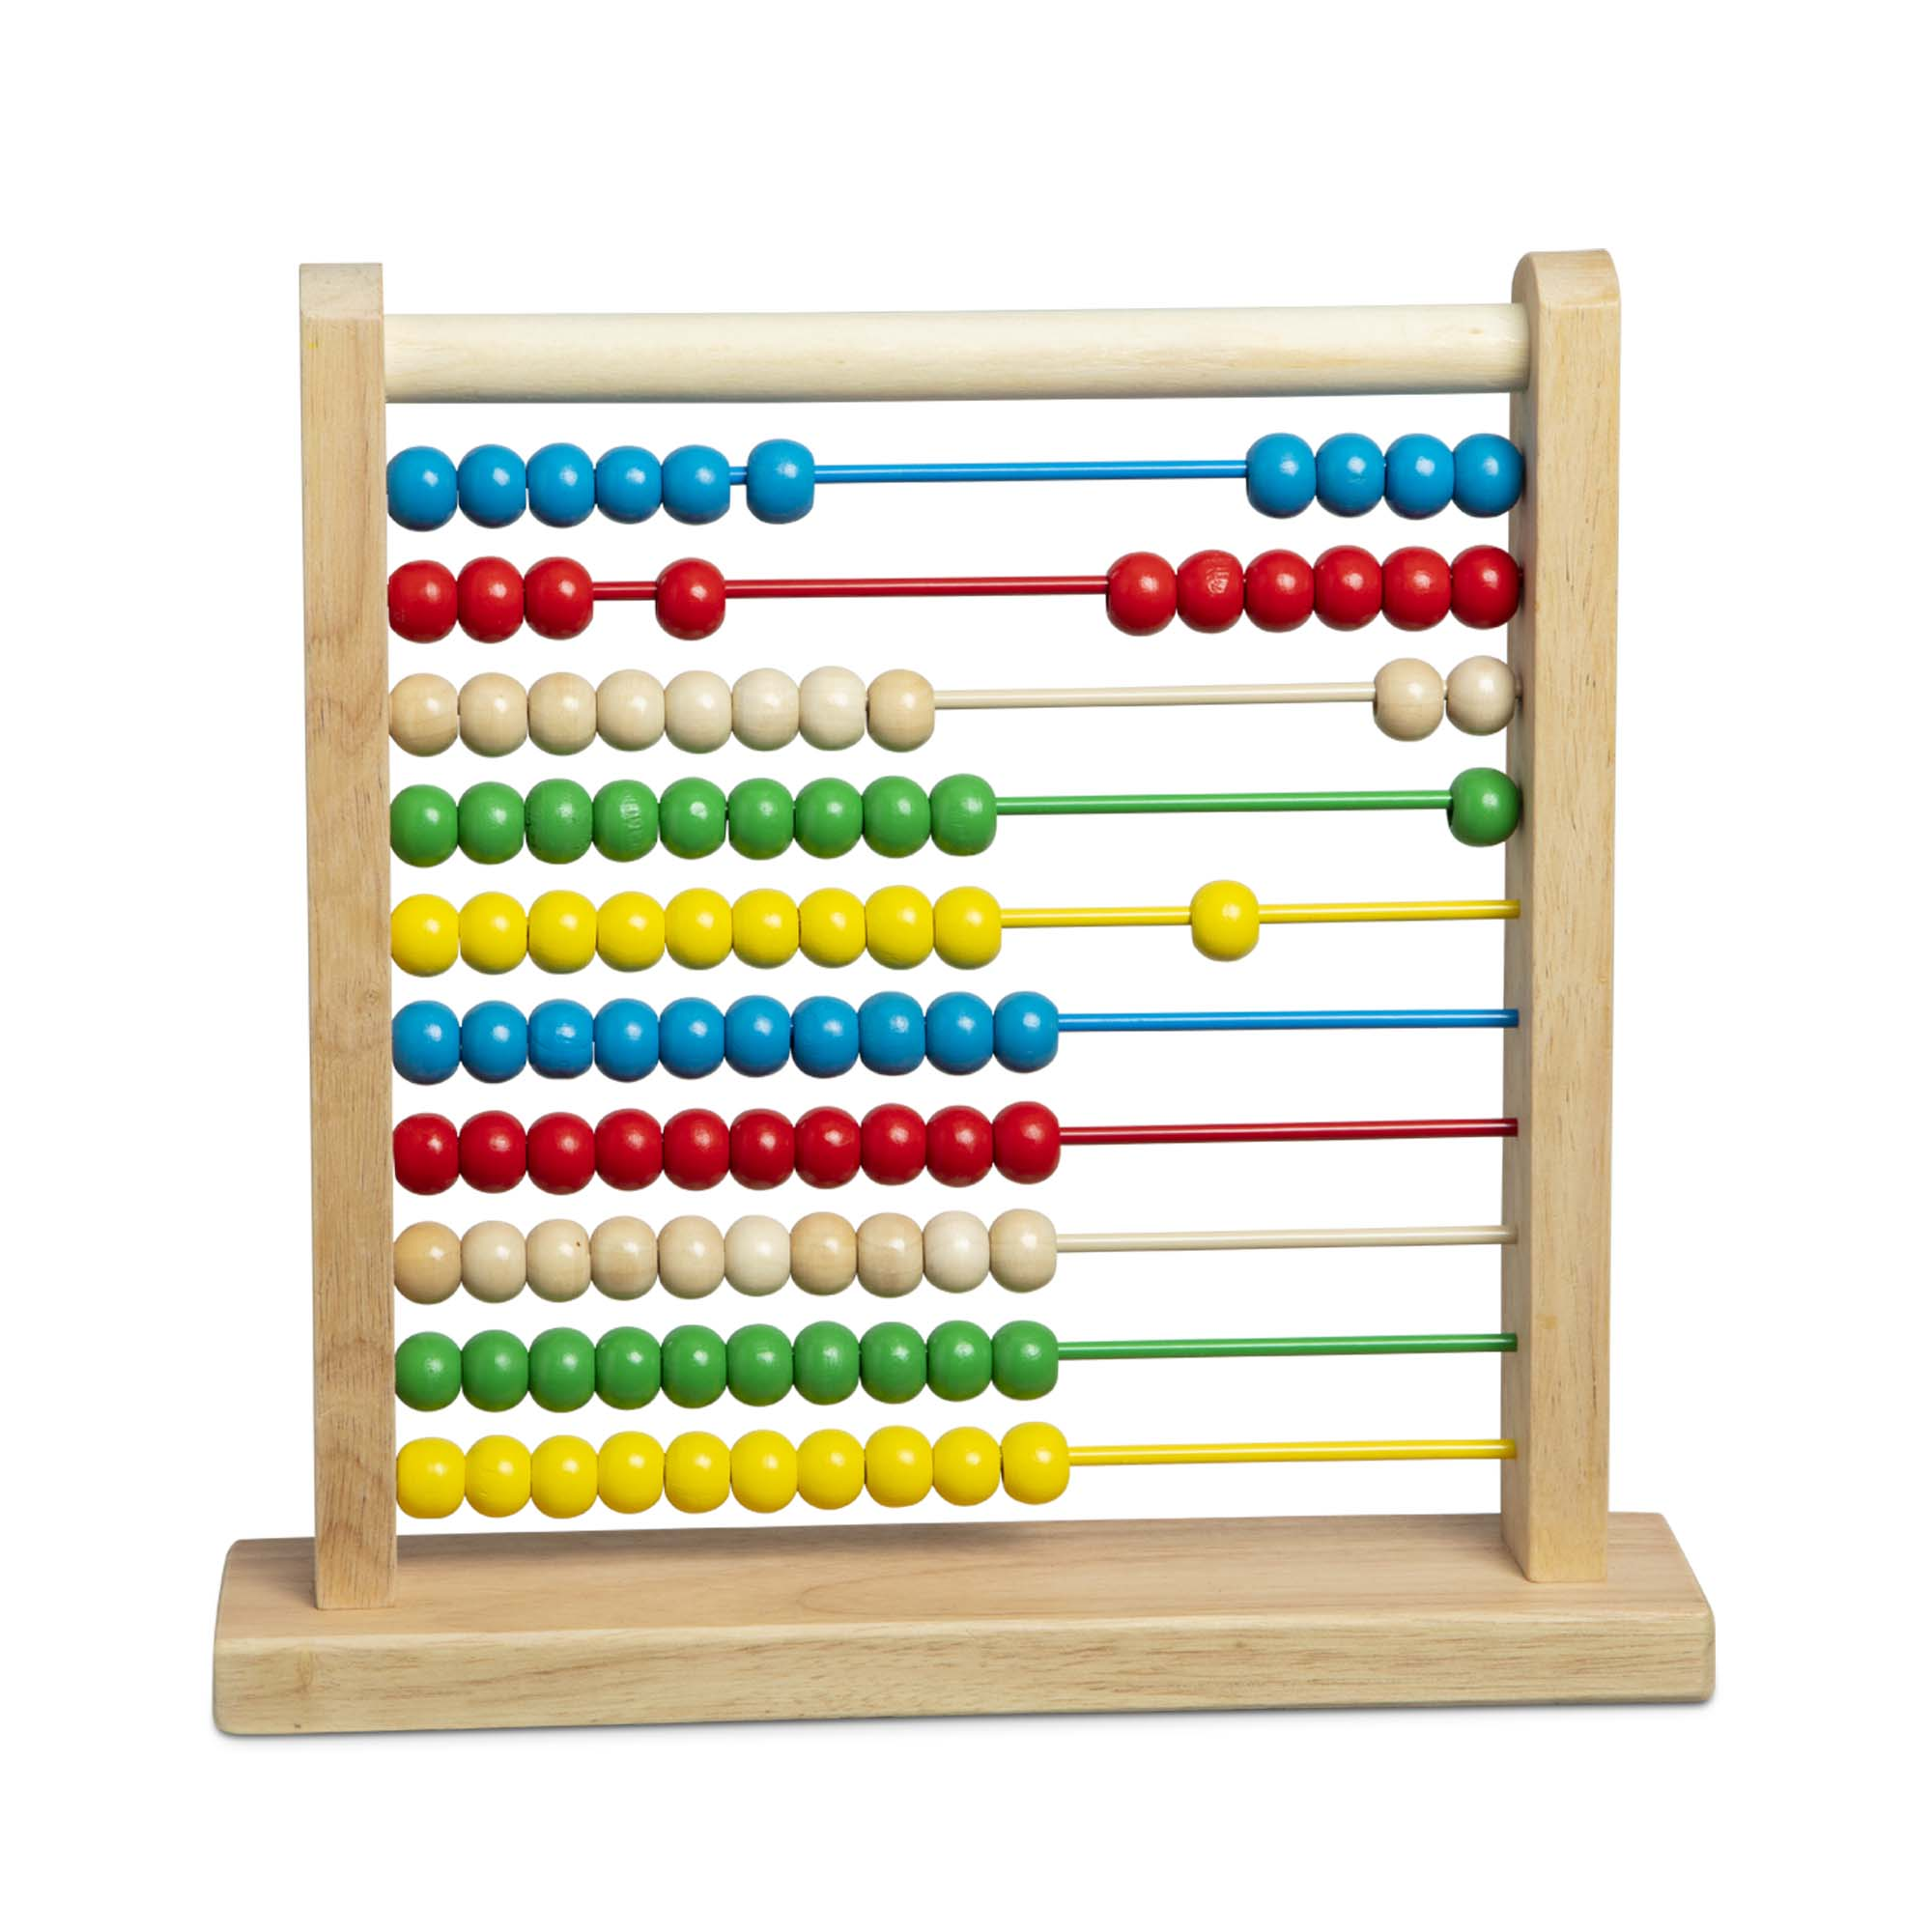 """Count on this classic wooden """"calculator"""" for years of play and learning! The solid hardwood base and frame holds 10 thick coated wires with 10 colorful wooden beads on each - 100 beads in all. Slide the beads for a visual and hands-on way to learn numbers and math concepts and to explore patterns and colors. Fun activity ideas included!"""